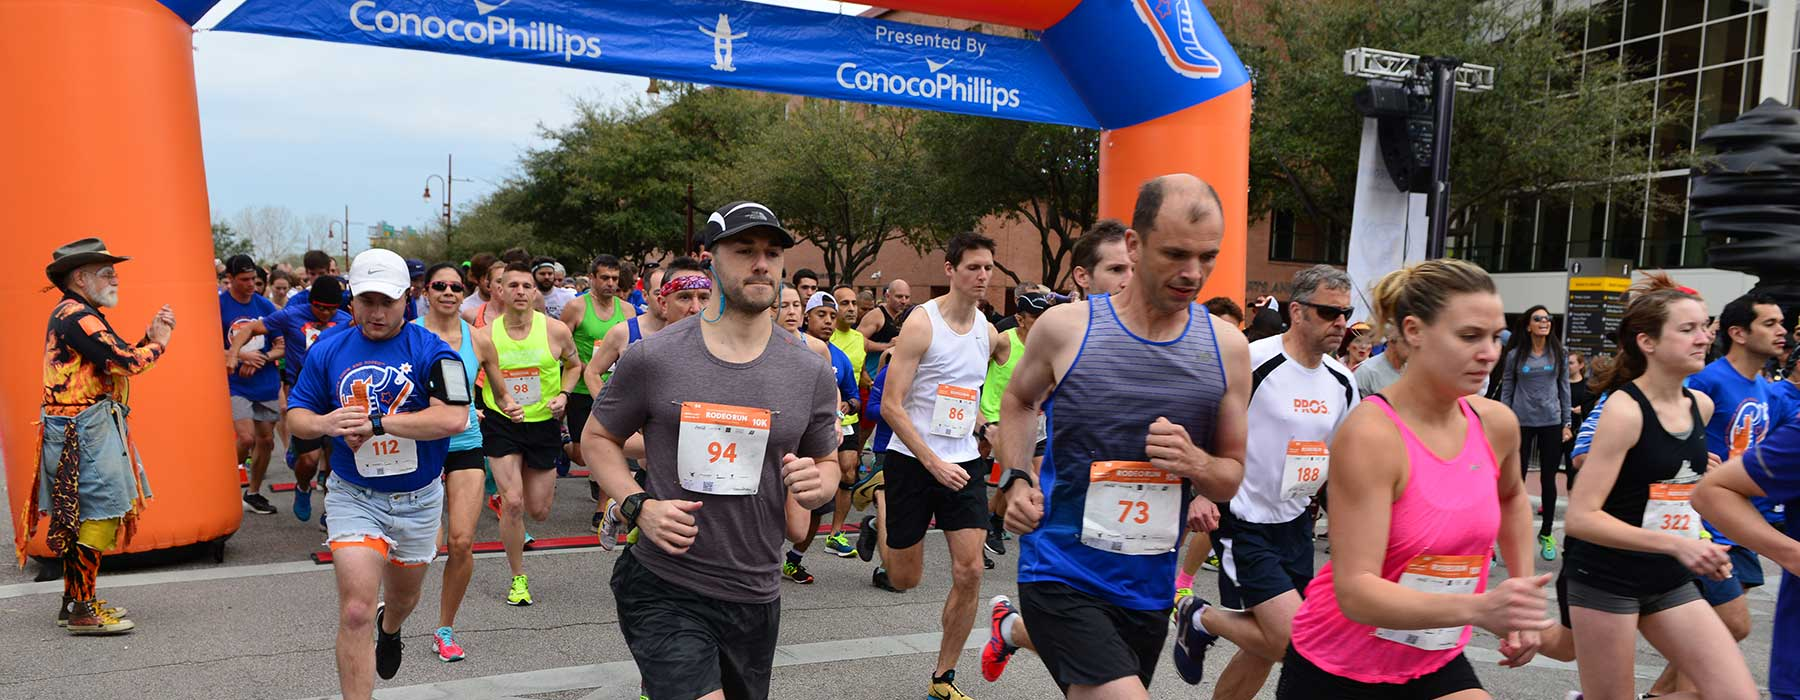 2019 Rodeo Run Houston Livestock Show And Rodeo